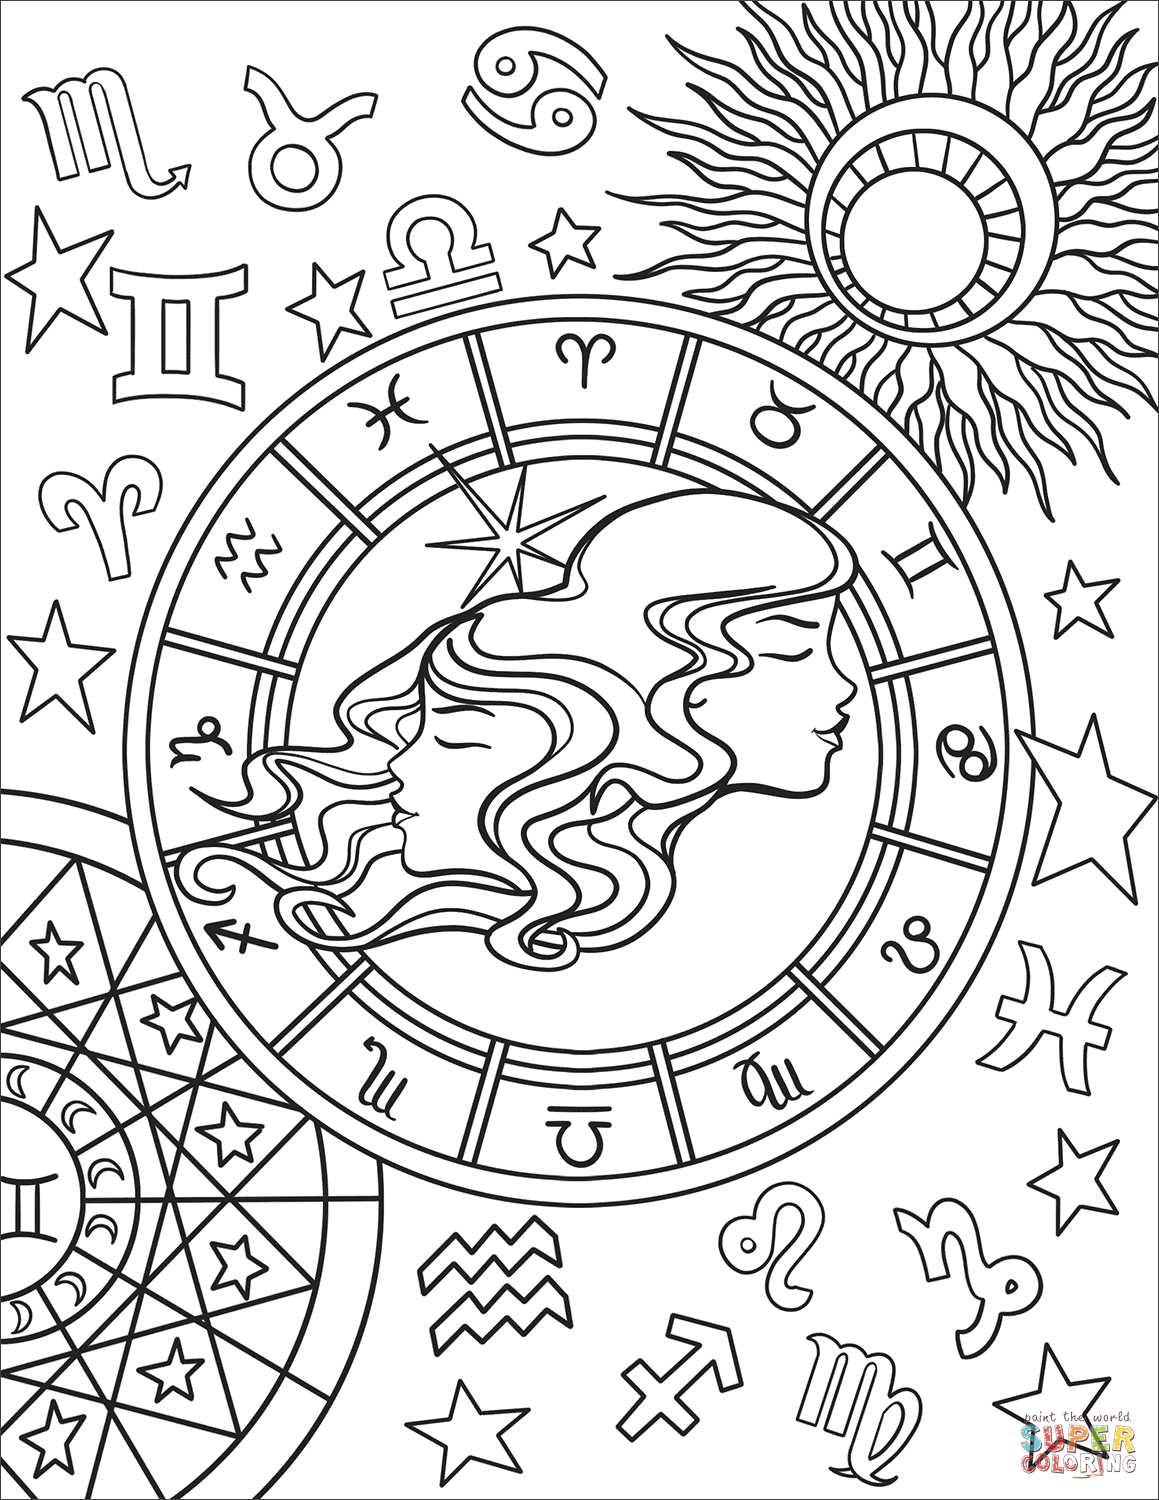 Gemini Zodiac Sign Super Coloring Zodiac Signs Colors Free Printable Coloring Pages Printable Coloring Pages